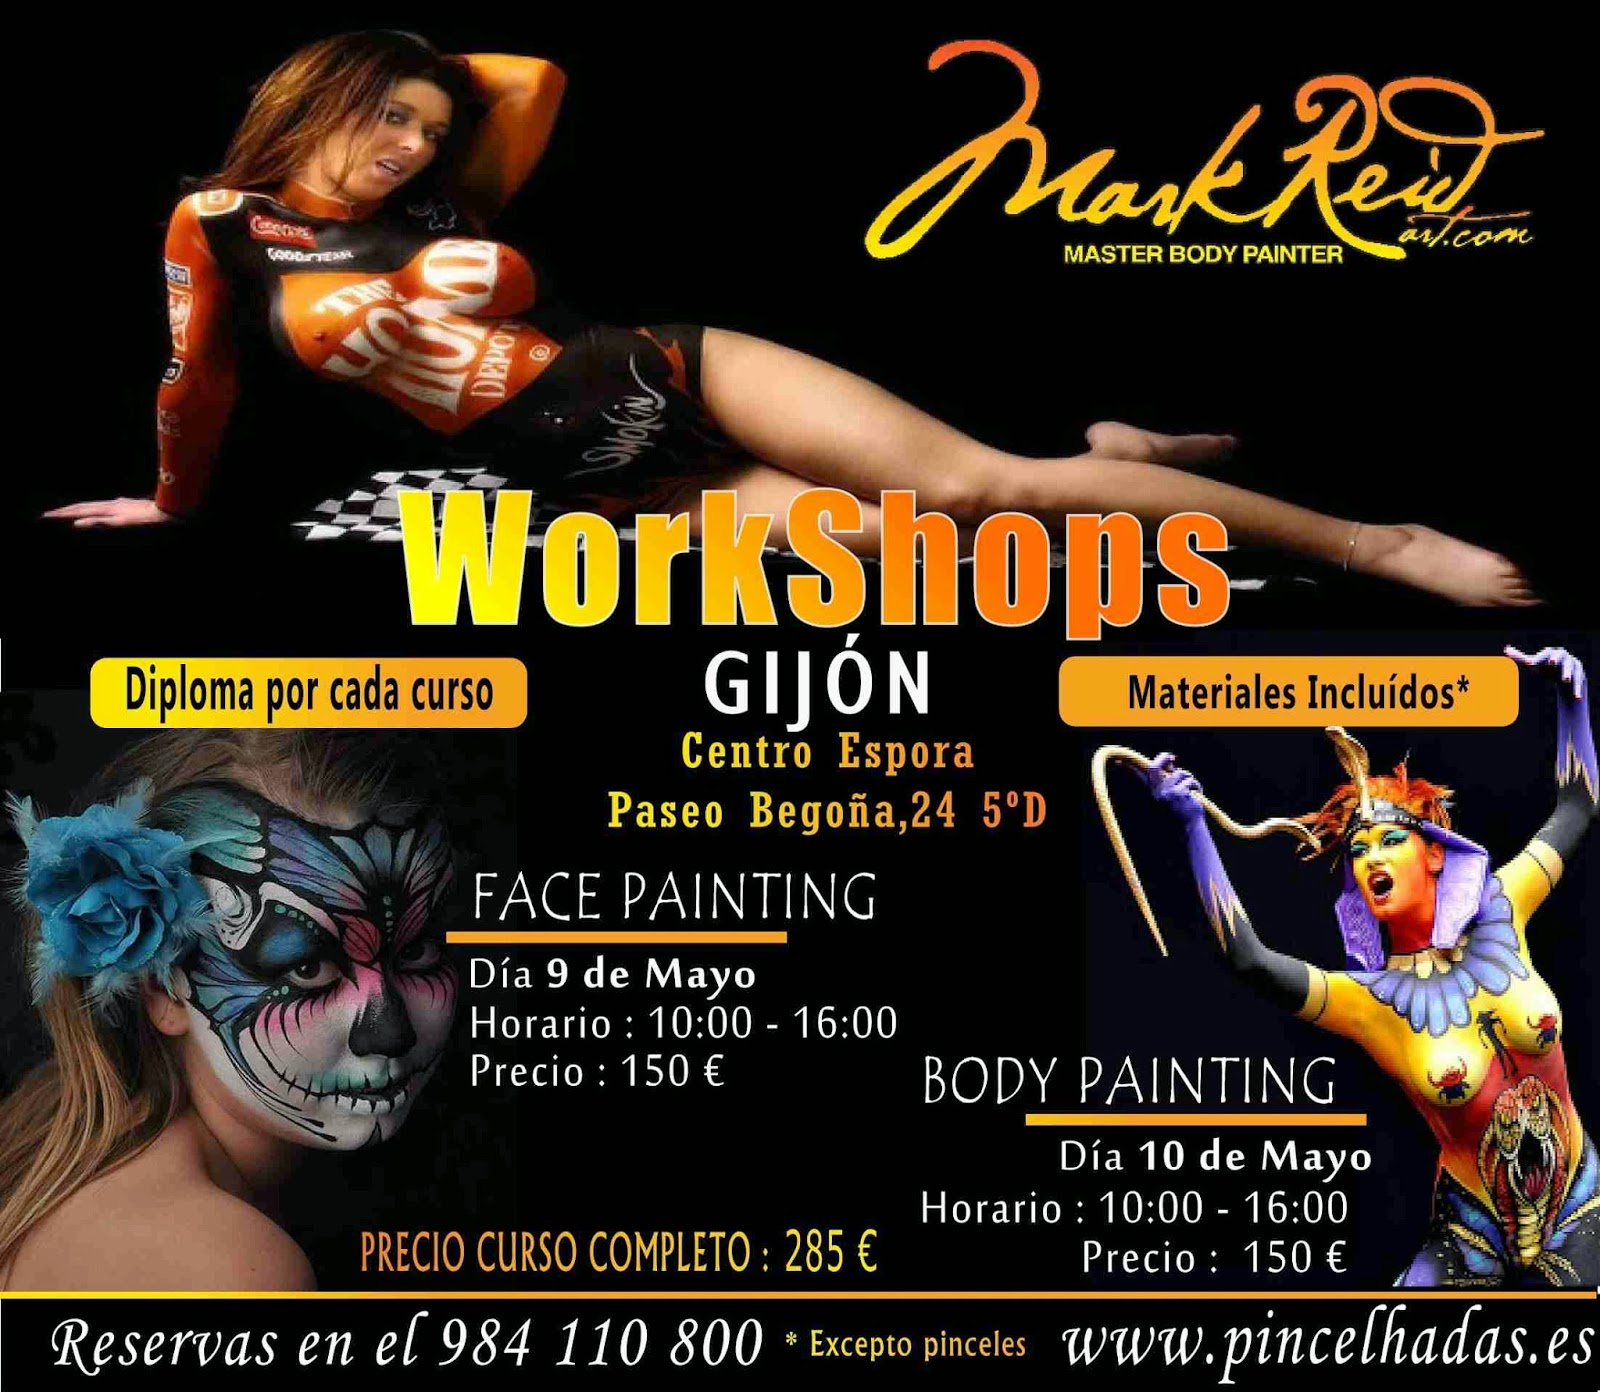 Blog del maquillaje profesional workshops mark reid en for Sillas para maquillar